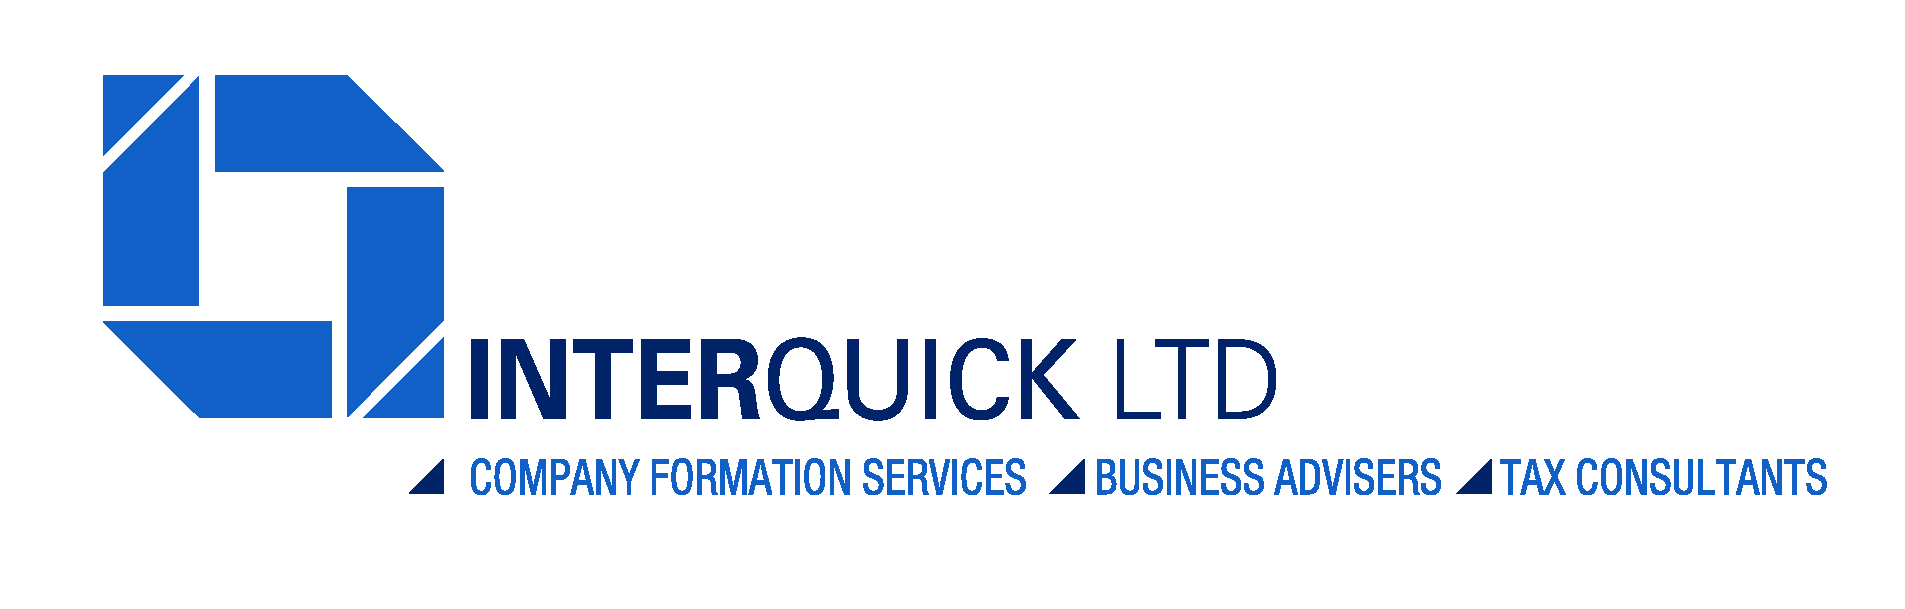 interquick